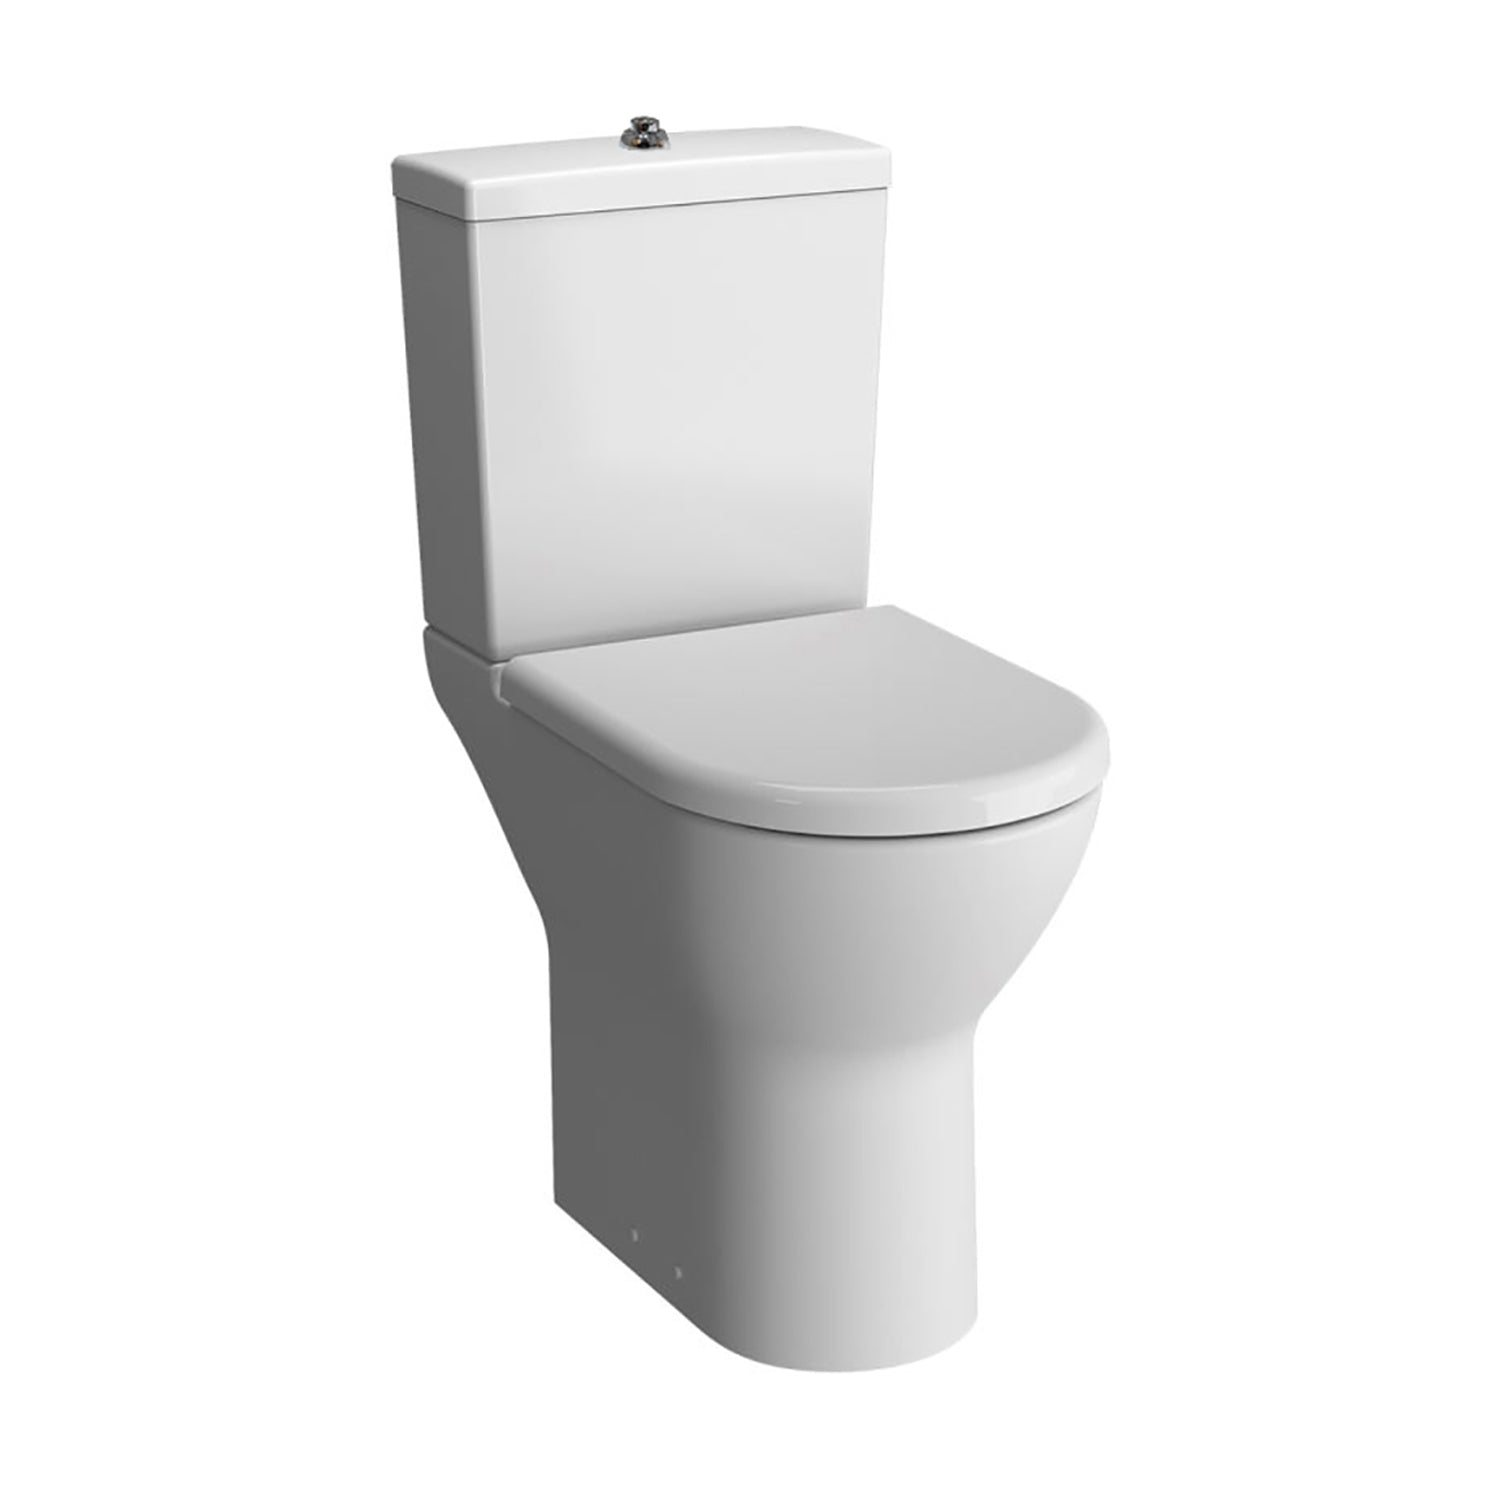 Vesta Comfort Height Close Coupled Toilet with the cistern on a white background